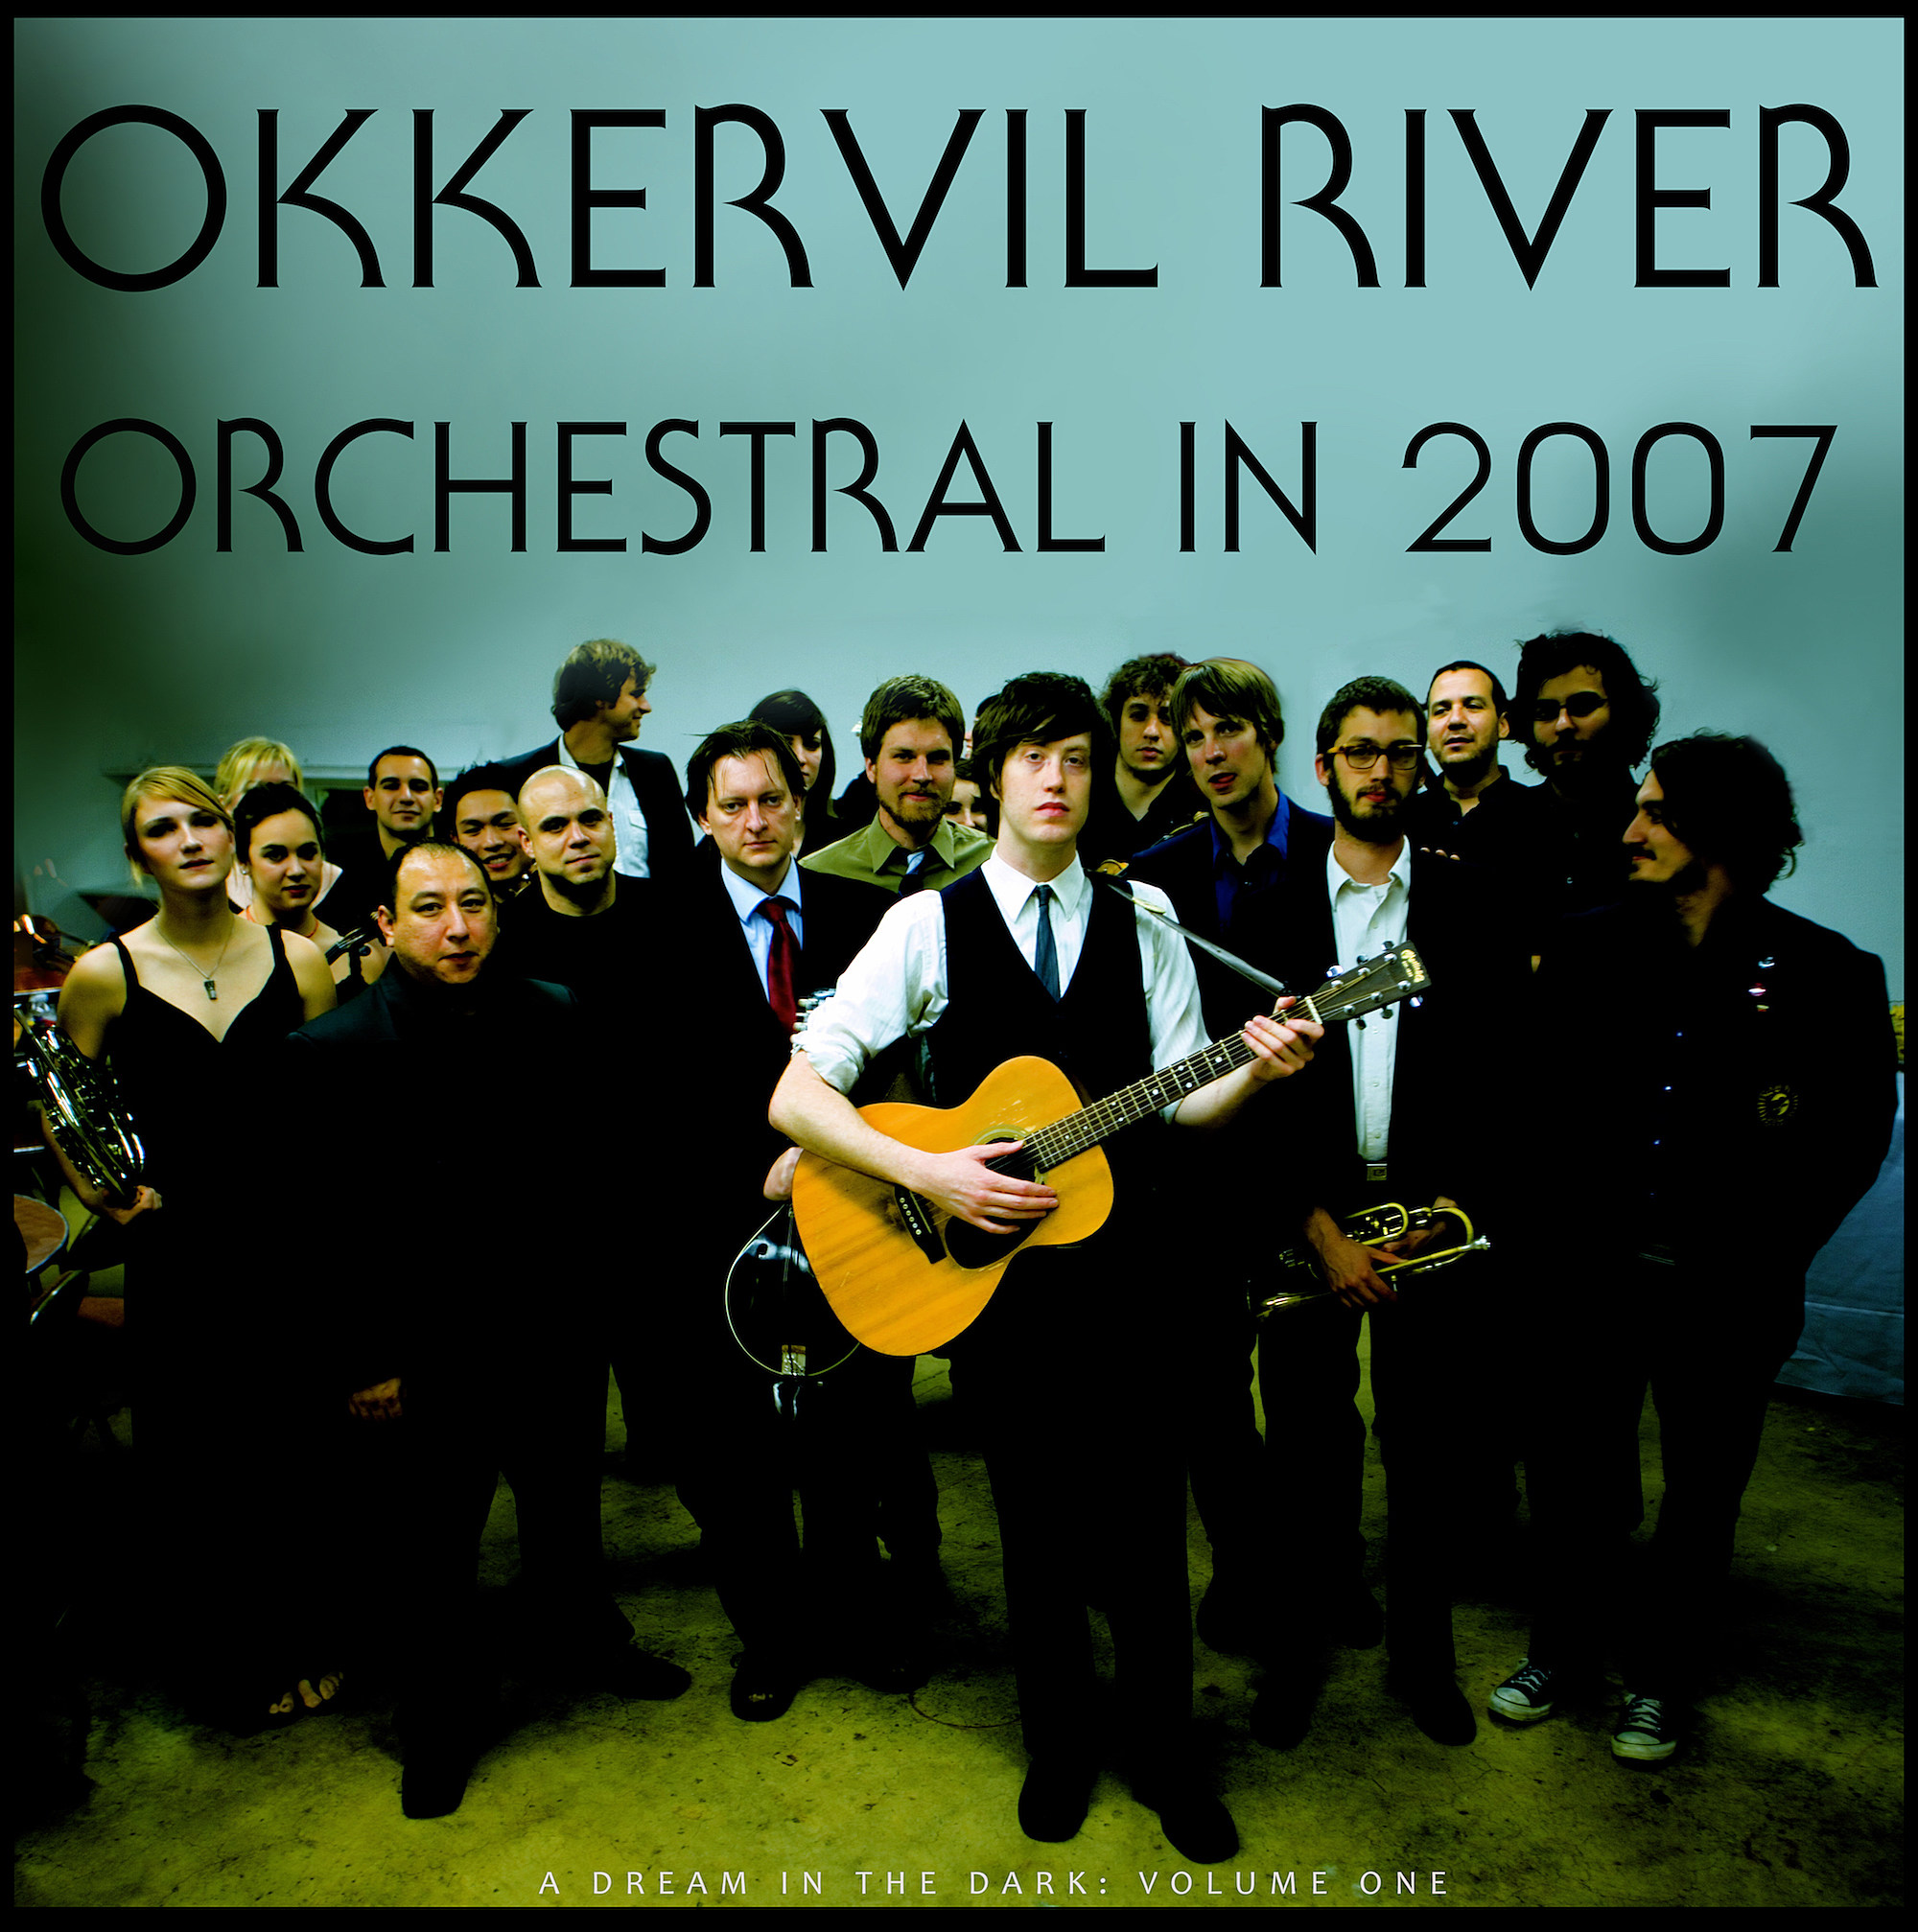 Okkervil River announce monthly live album series, touring